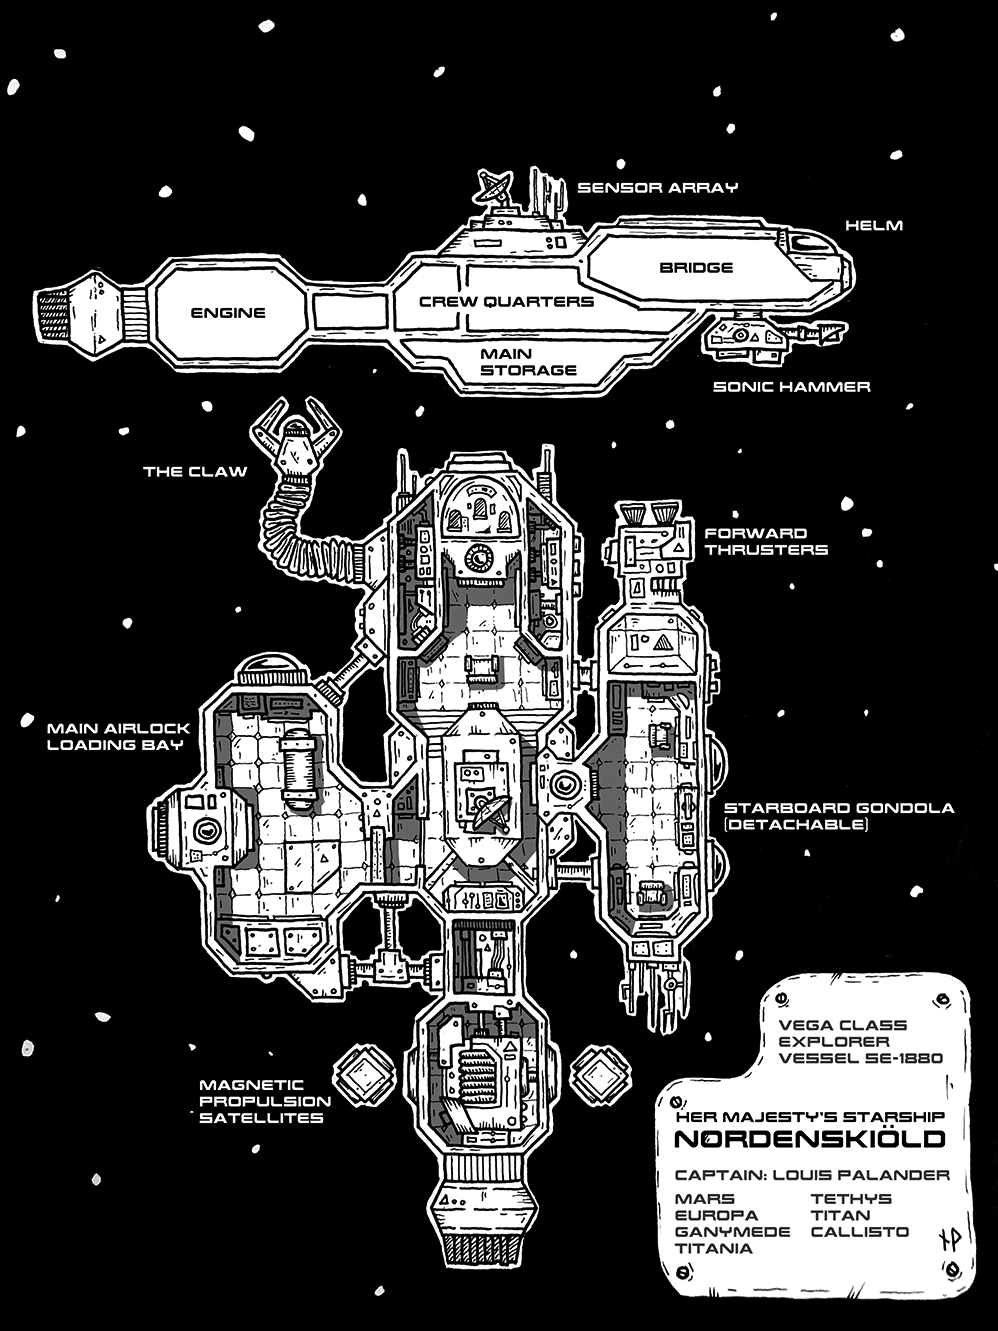 Blueprint of Her Majesty's Starship Nordenskiöld